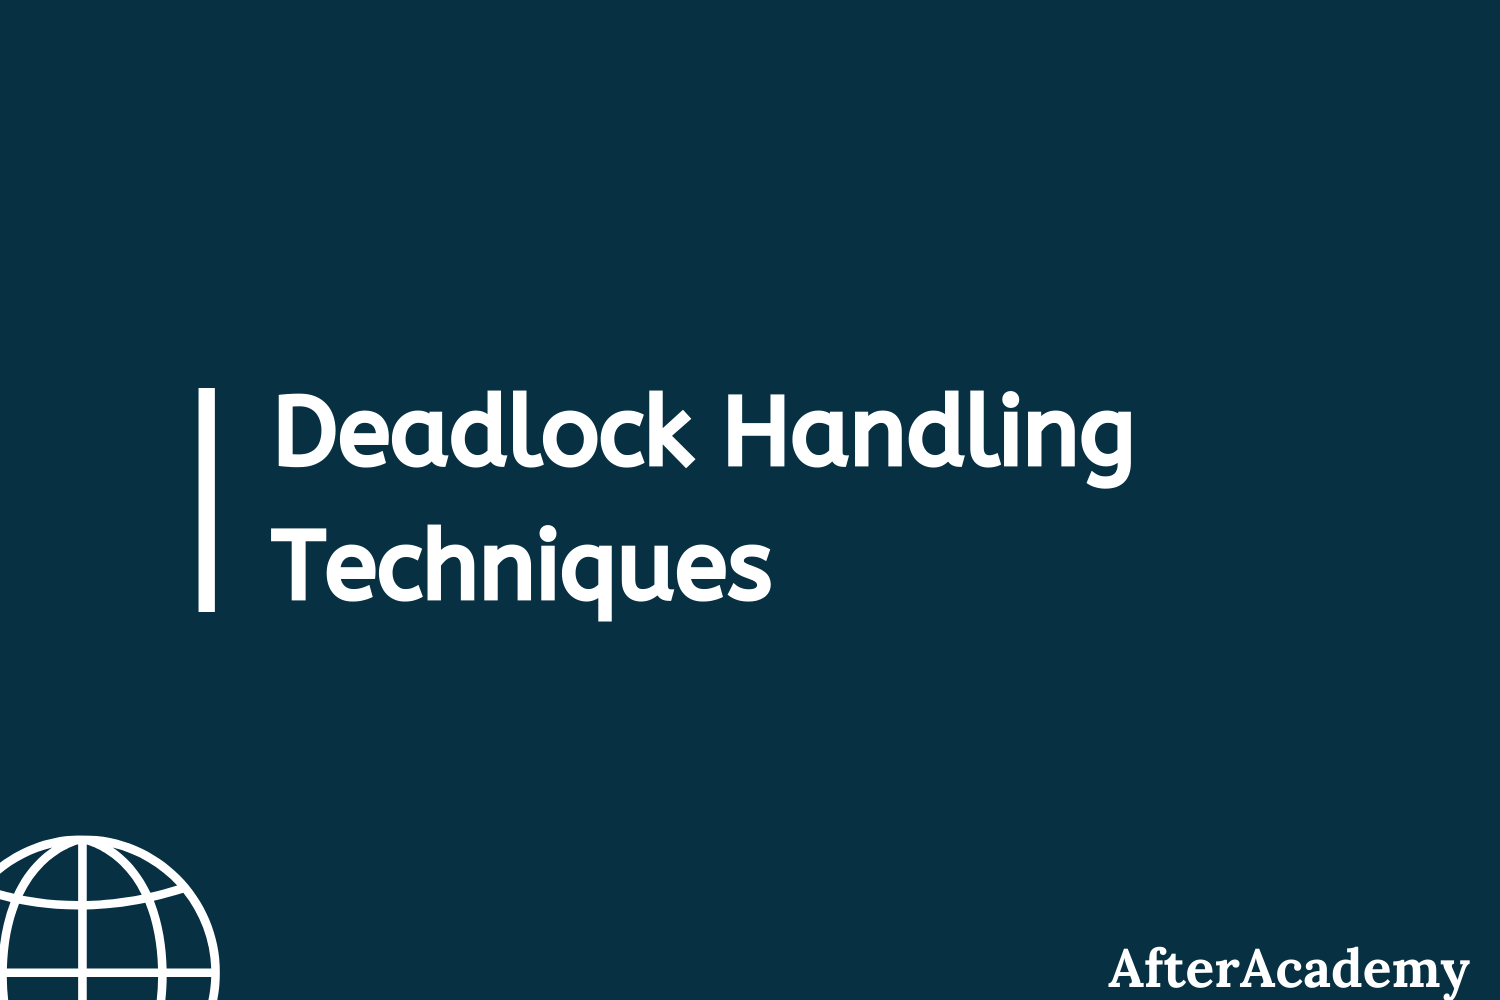 What are Deadlock handling techniques in Operating System?